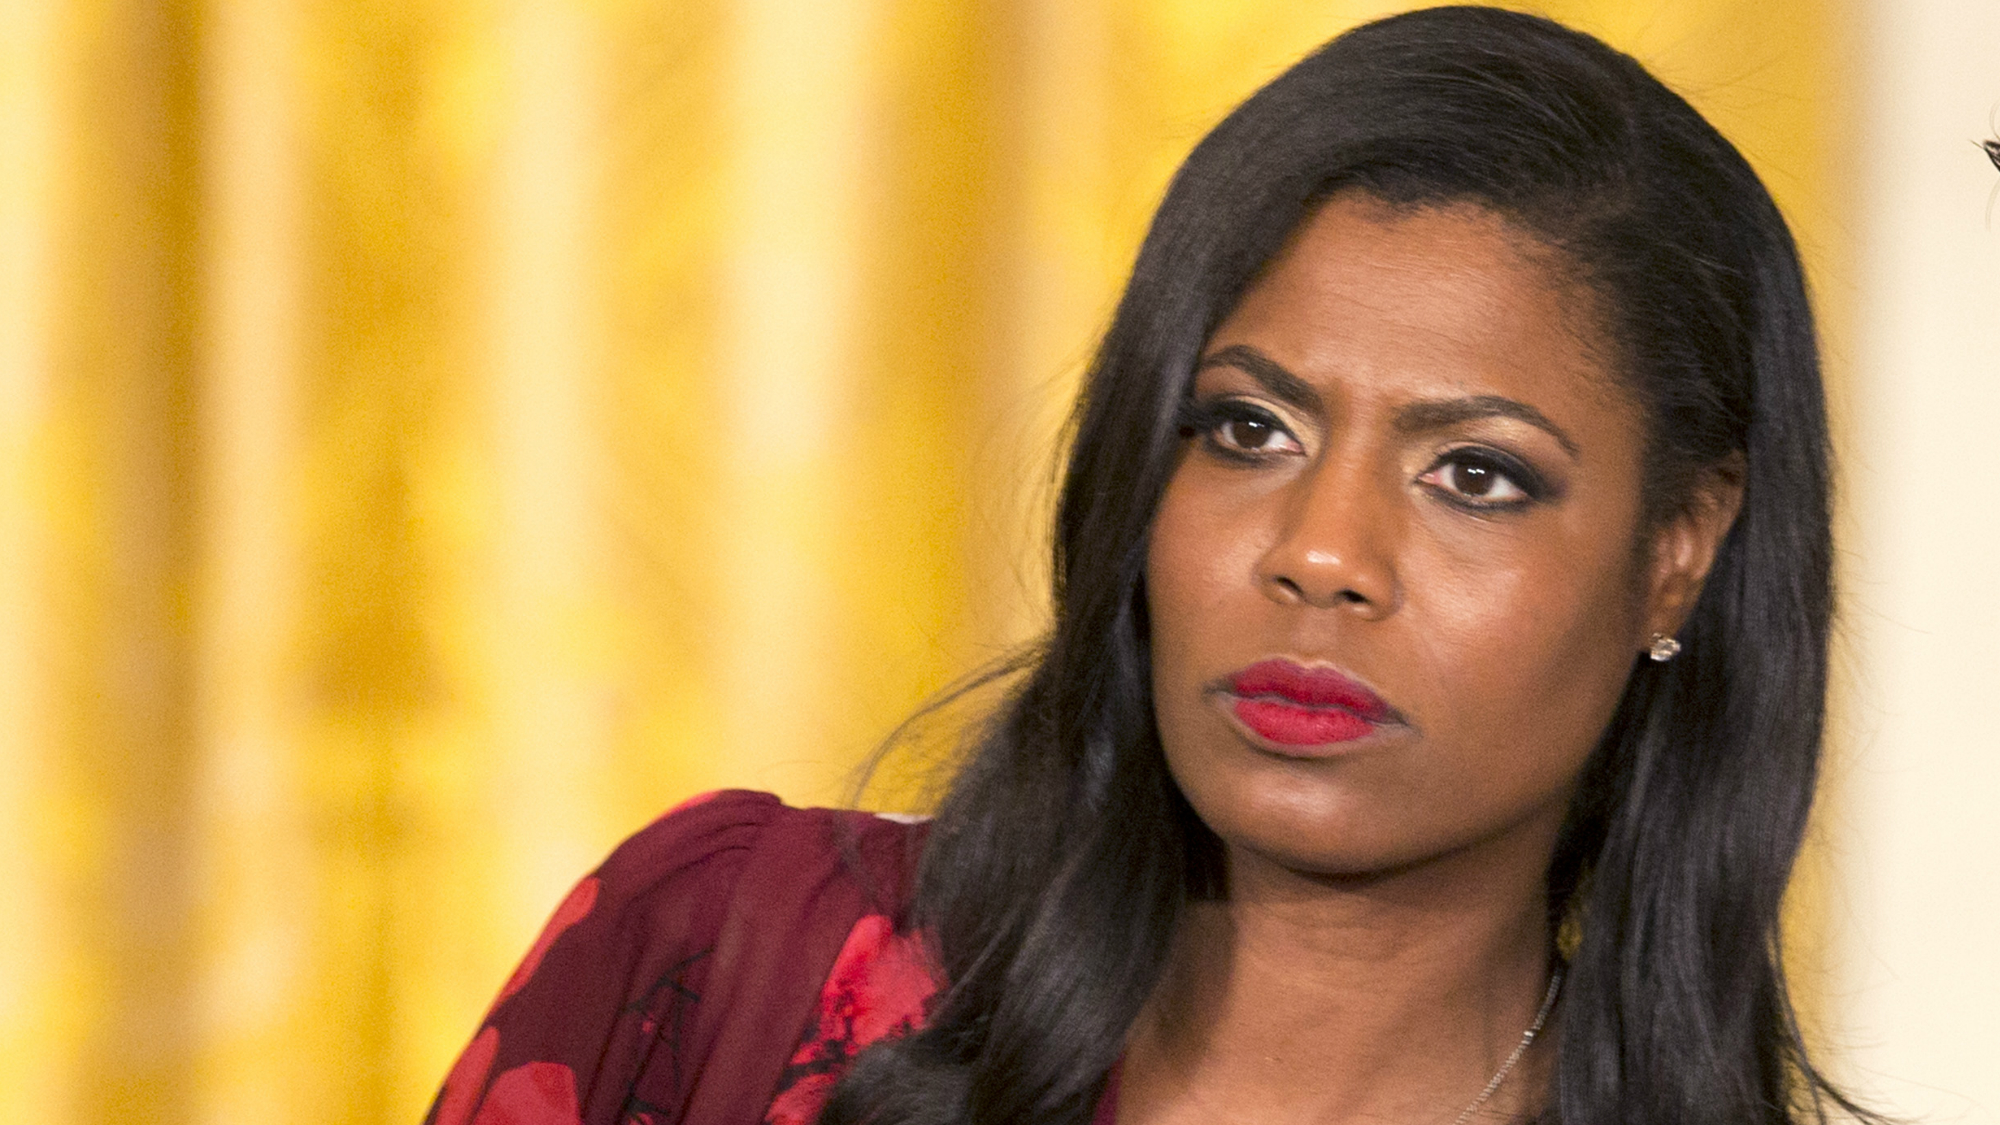 Lit AF: Omarosa Manigault, Ed Gordon shame each other at NABJ